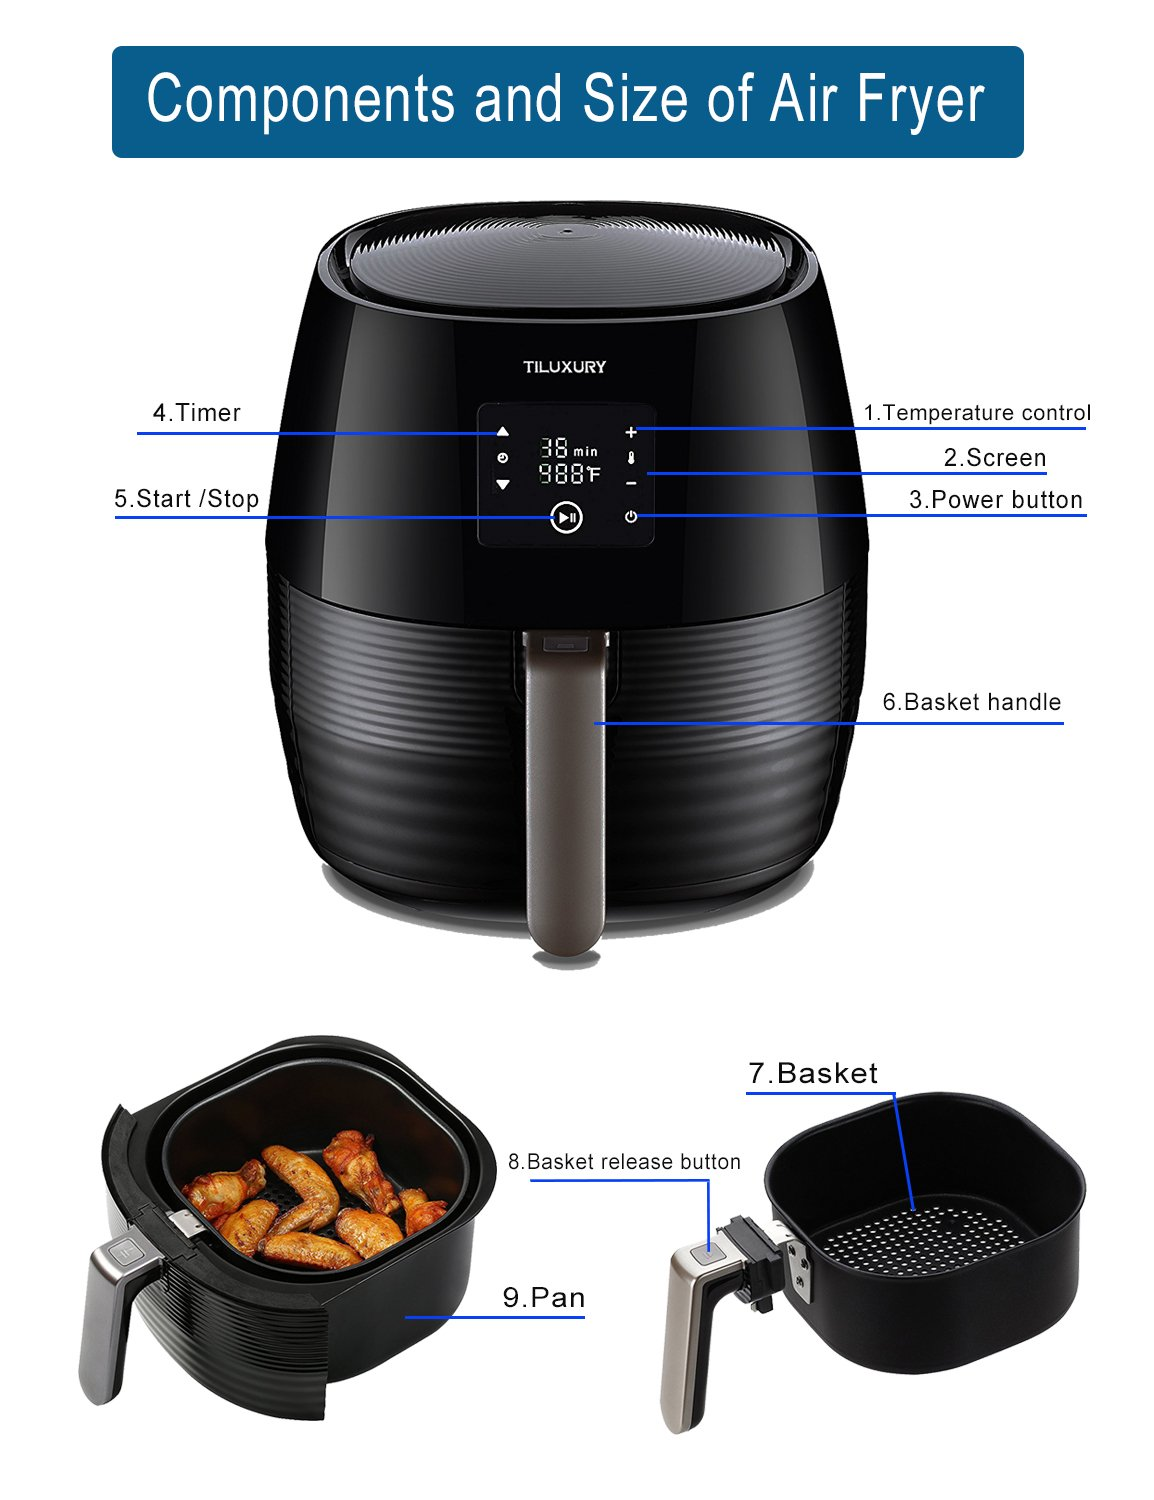 Tiluxury Air Fryer,Electric Air Fryers, Healthy Food Less Fat,Air French Fries,Hot Air Frying Technology Cooker,Digital Touch Screen and Non-Stick Basket,1400W 3.7QT (Black) by Tiluxury (Image #4)